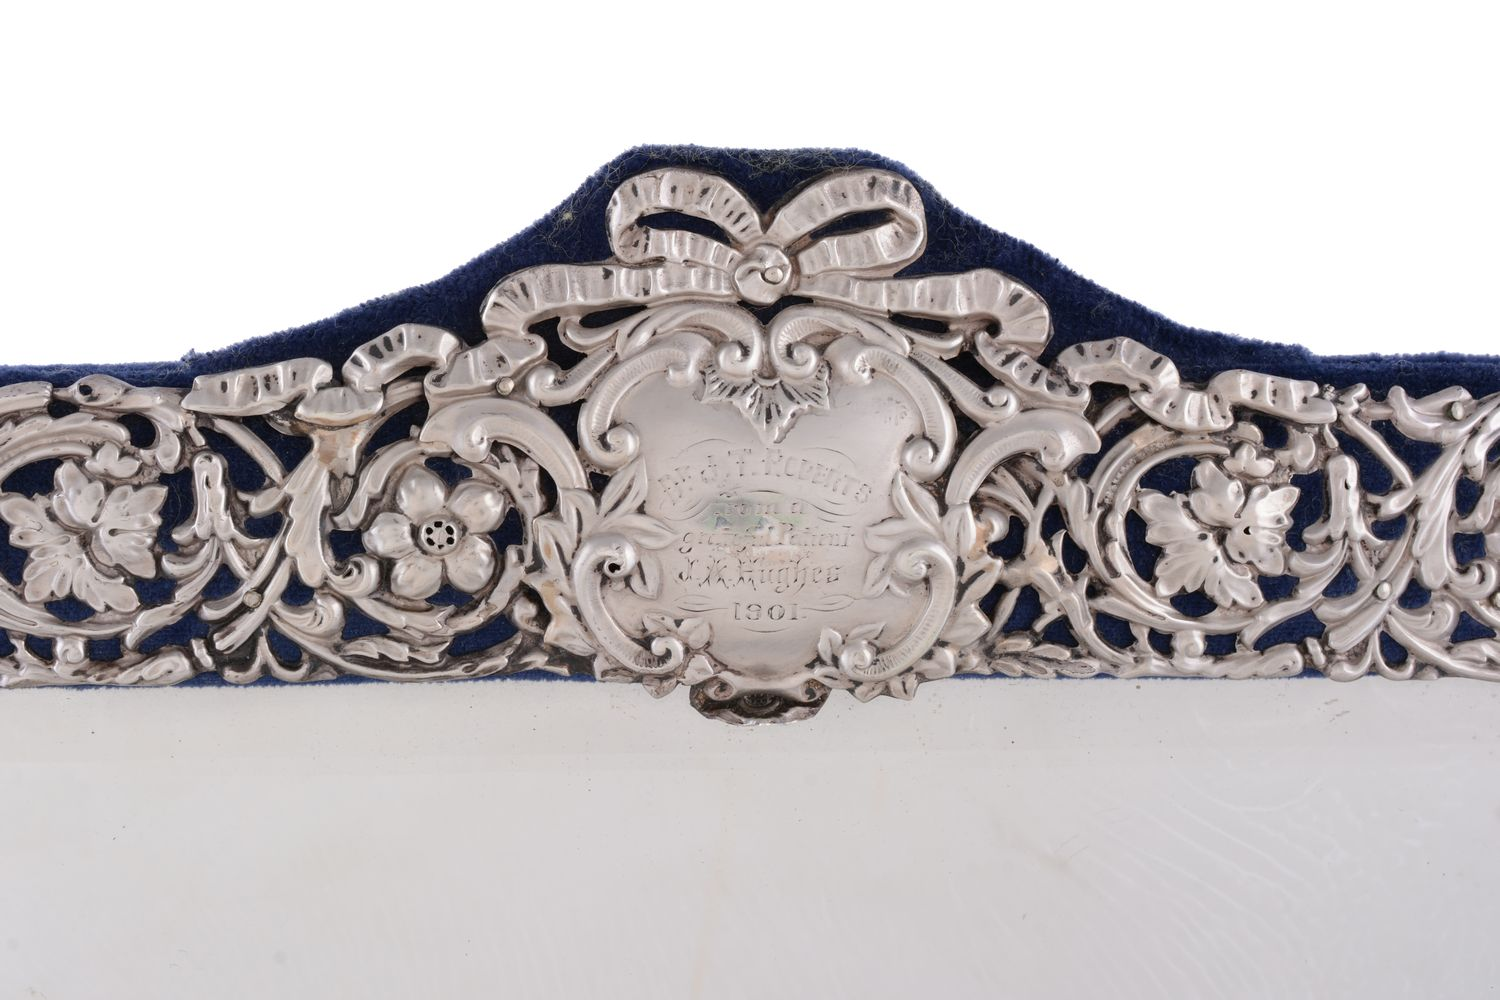 A late Victorian silver dressing table mirror by Henry Matthews - Image 2 of 3